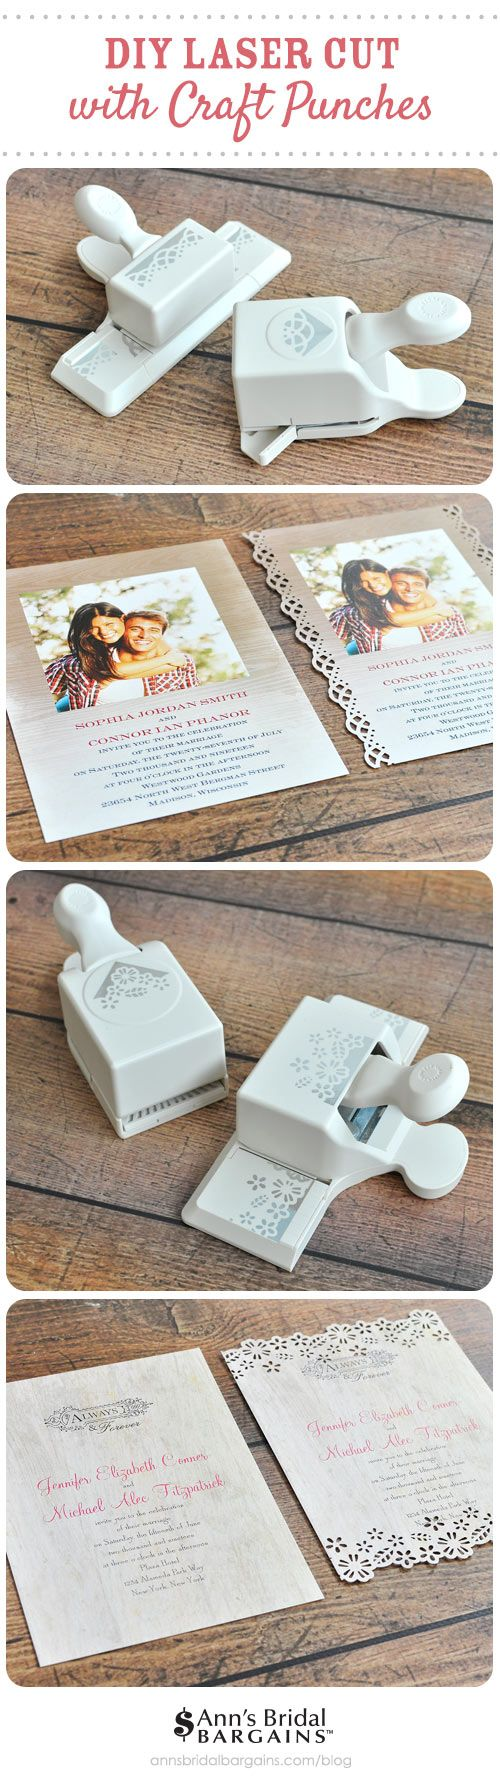 best images about courtney wedding on pinterest wooden signs